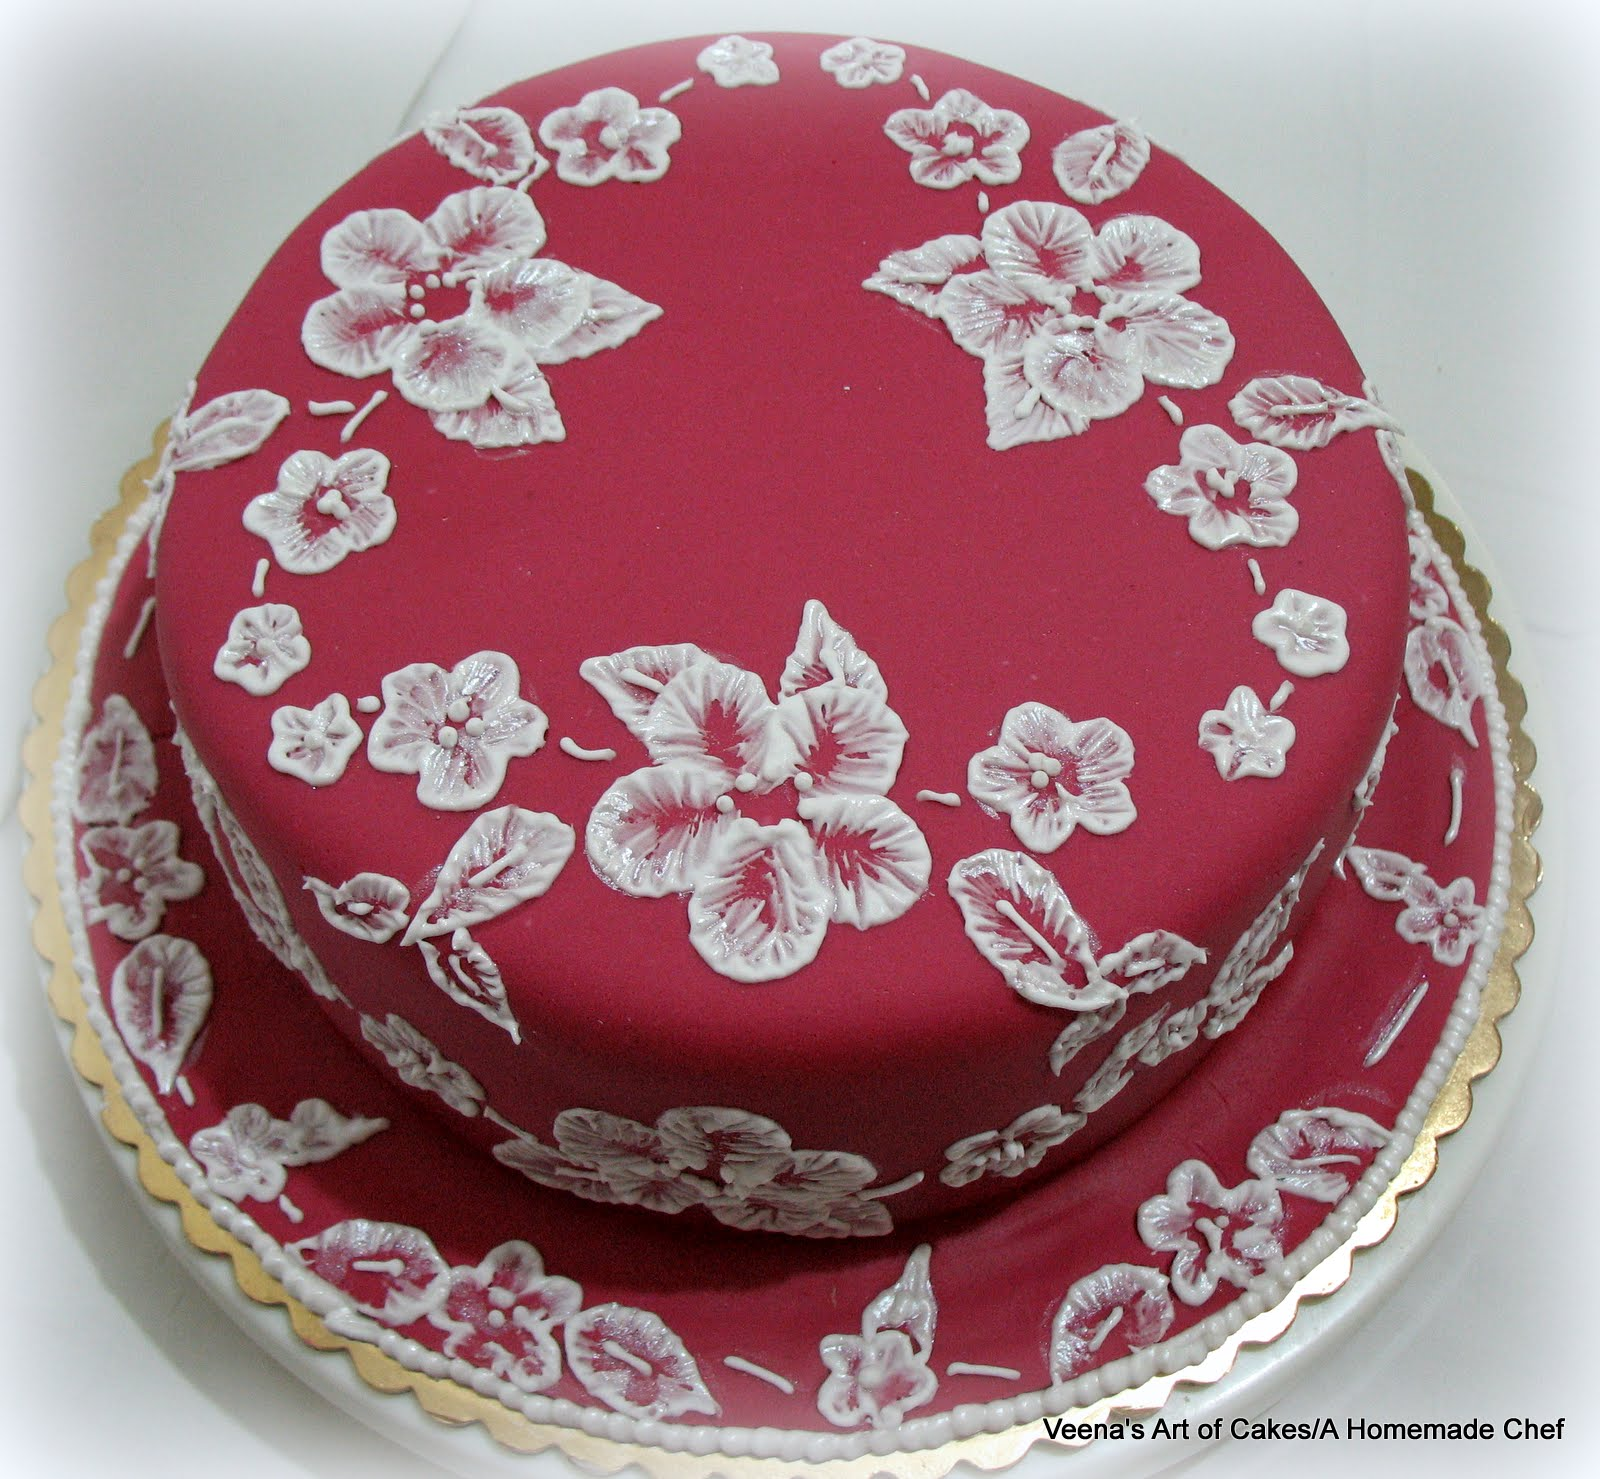 Veena s Art of Cakes: Brush Embroidery Cake Lace Design